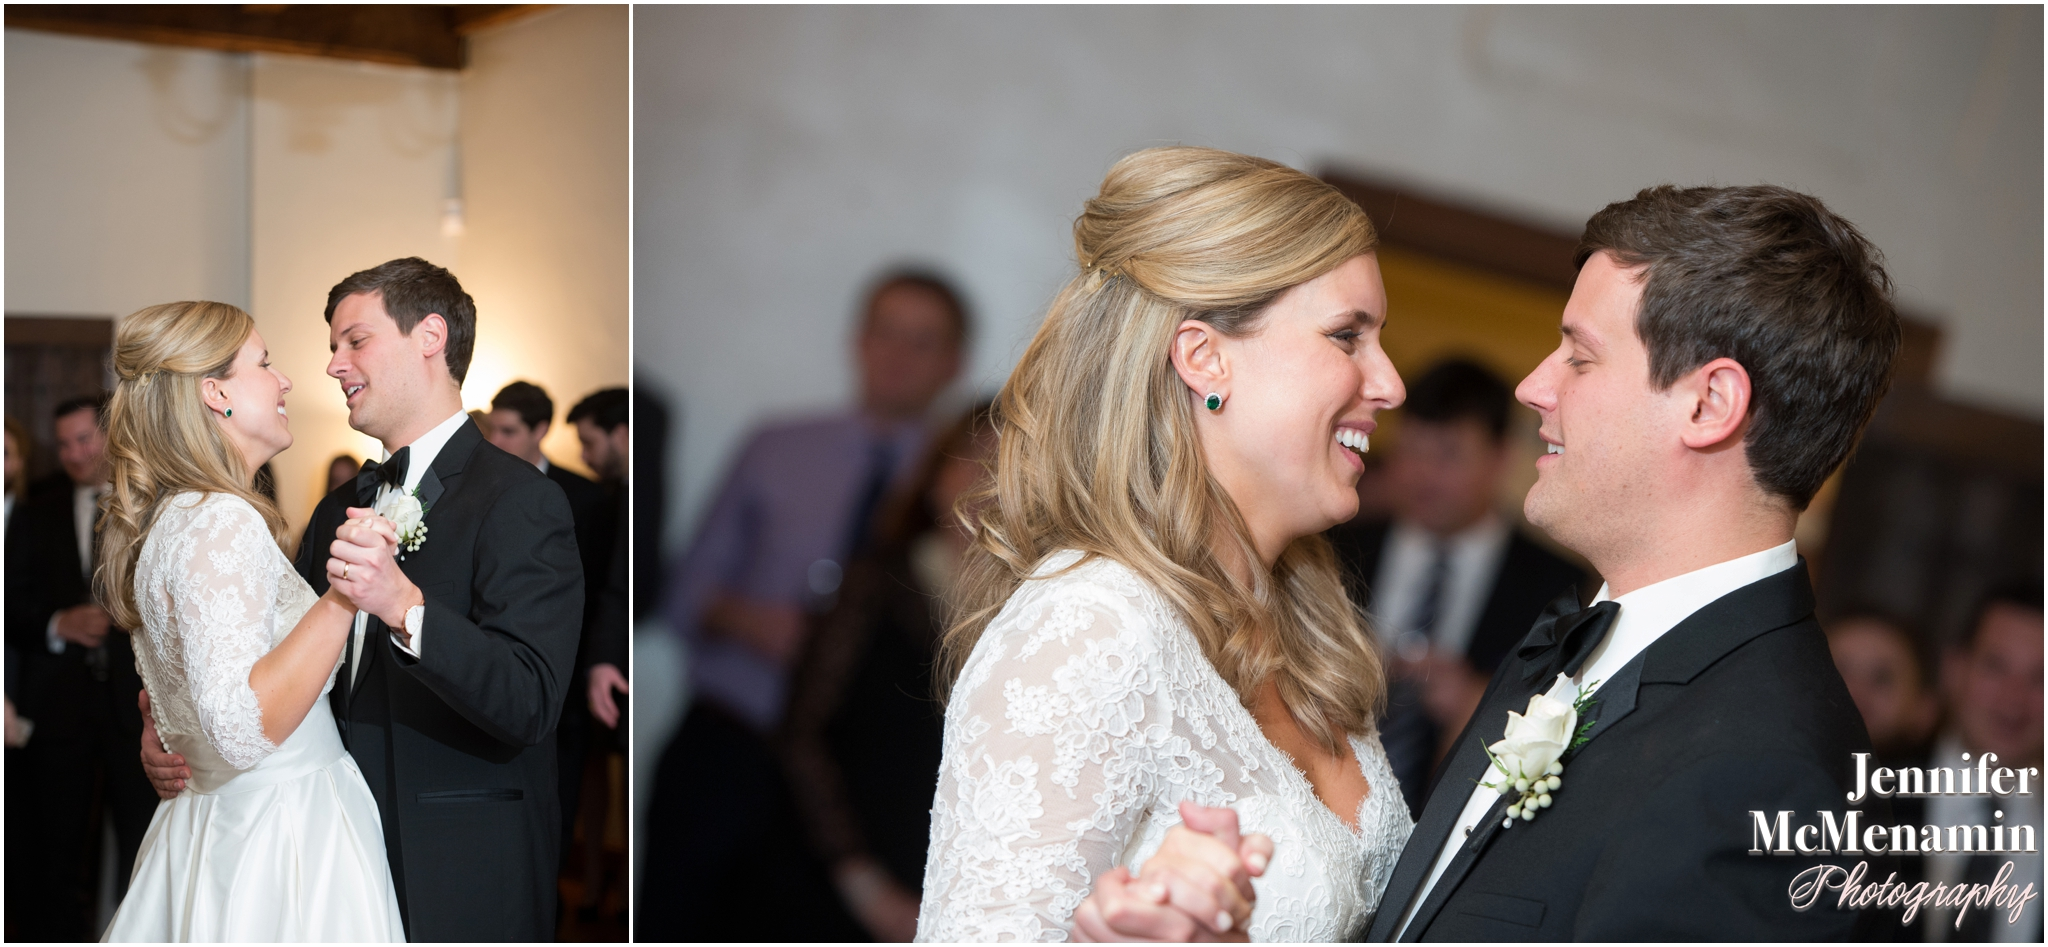 0096_RyanClemmens_02749-0725_JenniferMcMenaminPhotography_Immaculate-Conception-Church_The-Cloisters_Baltimore-wedding-photography_Baltimore-wedding-photographer